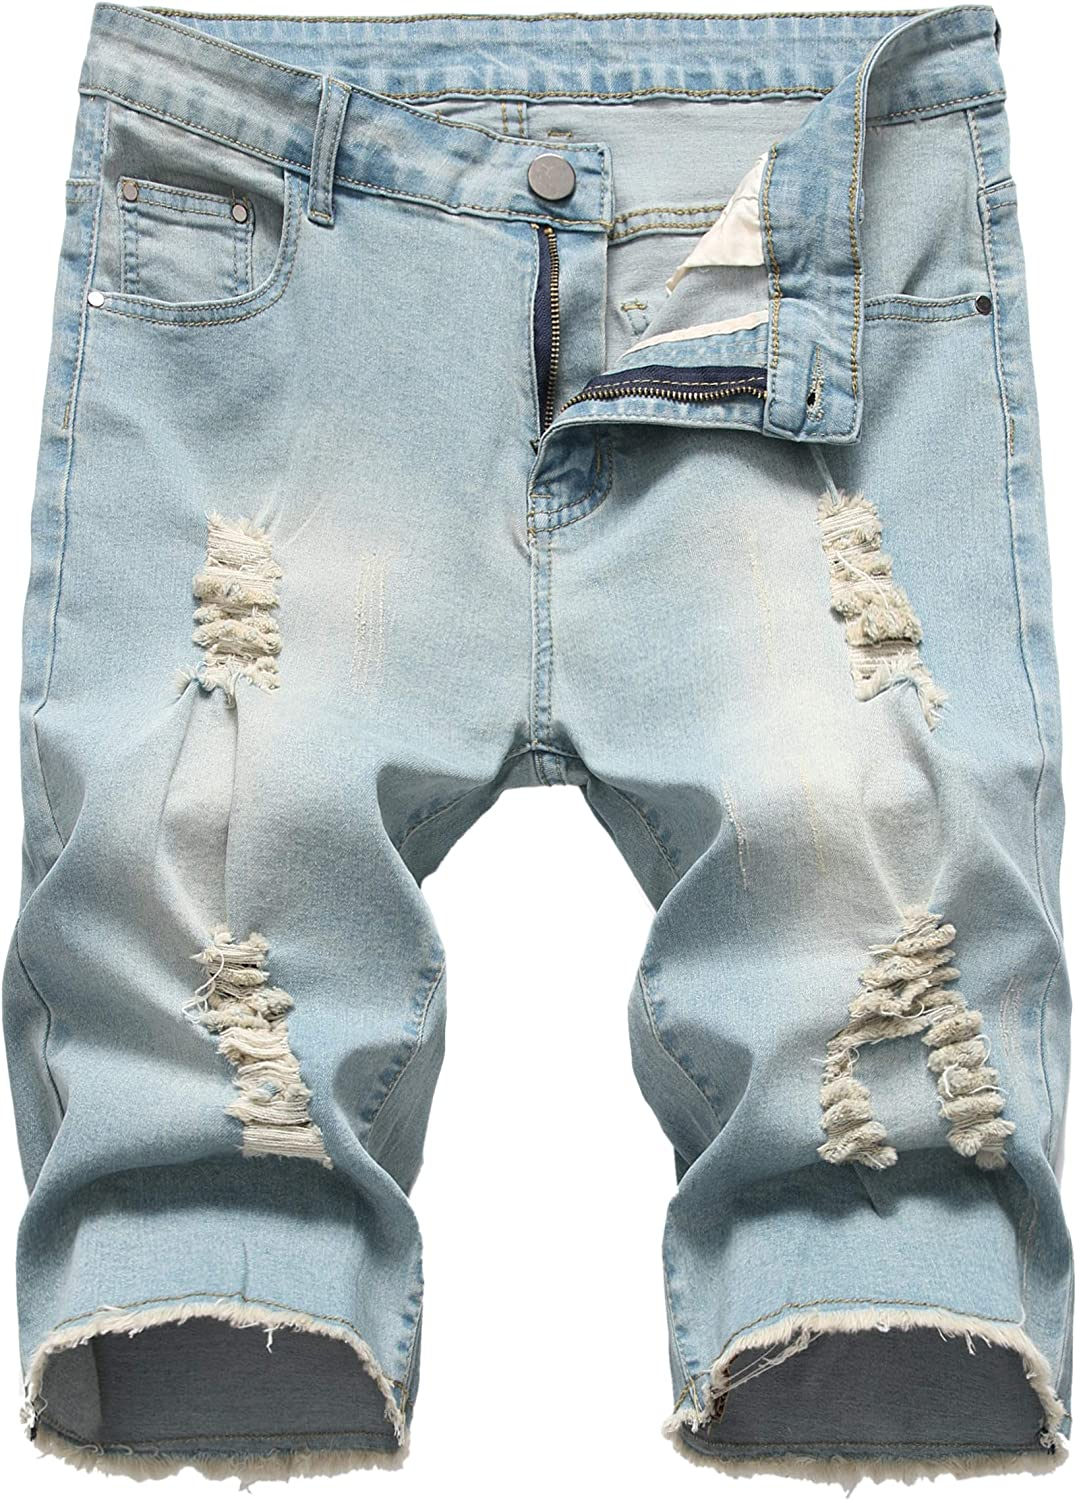 Grimgrow Mens Casual Ripped Short Jeans Mid Waist Distressed Denim Shorts